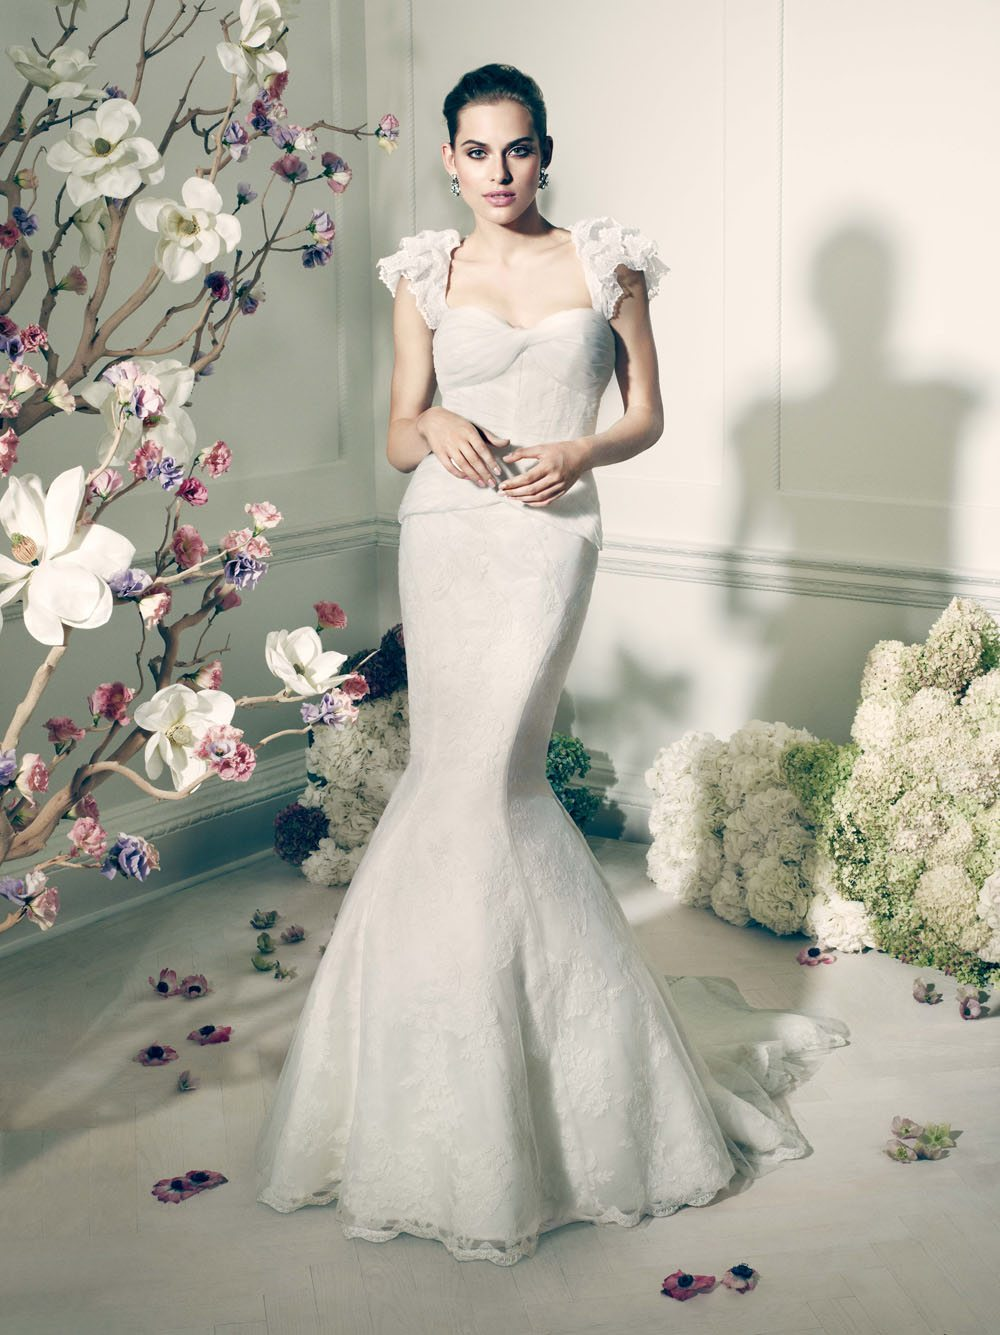 zac-posen-2014-wedding-dresses-04.jpg